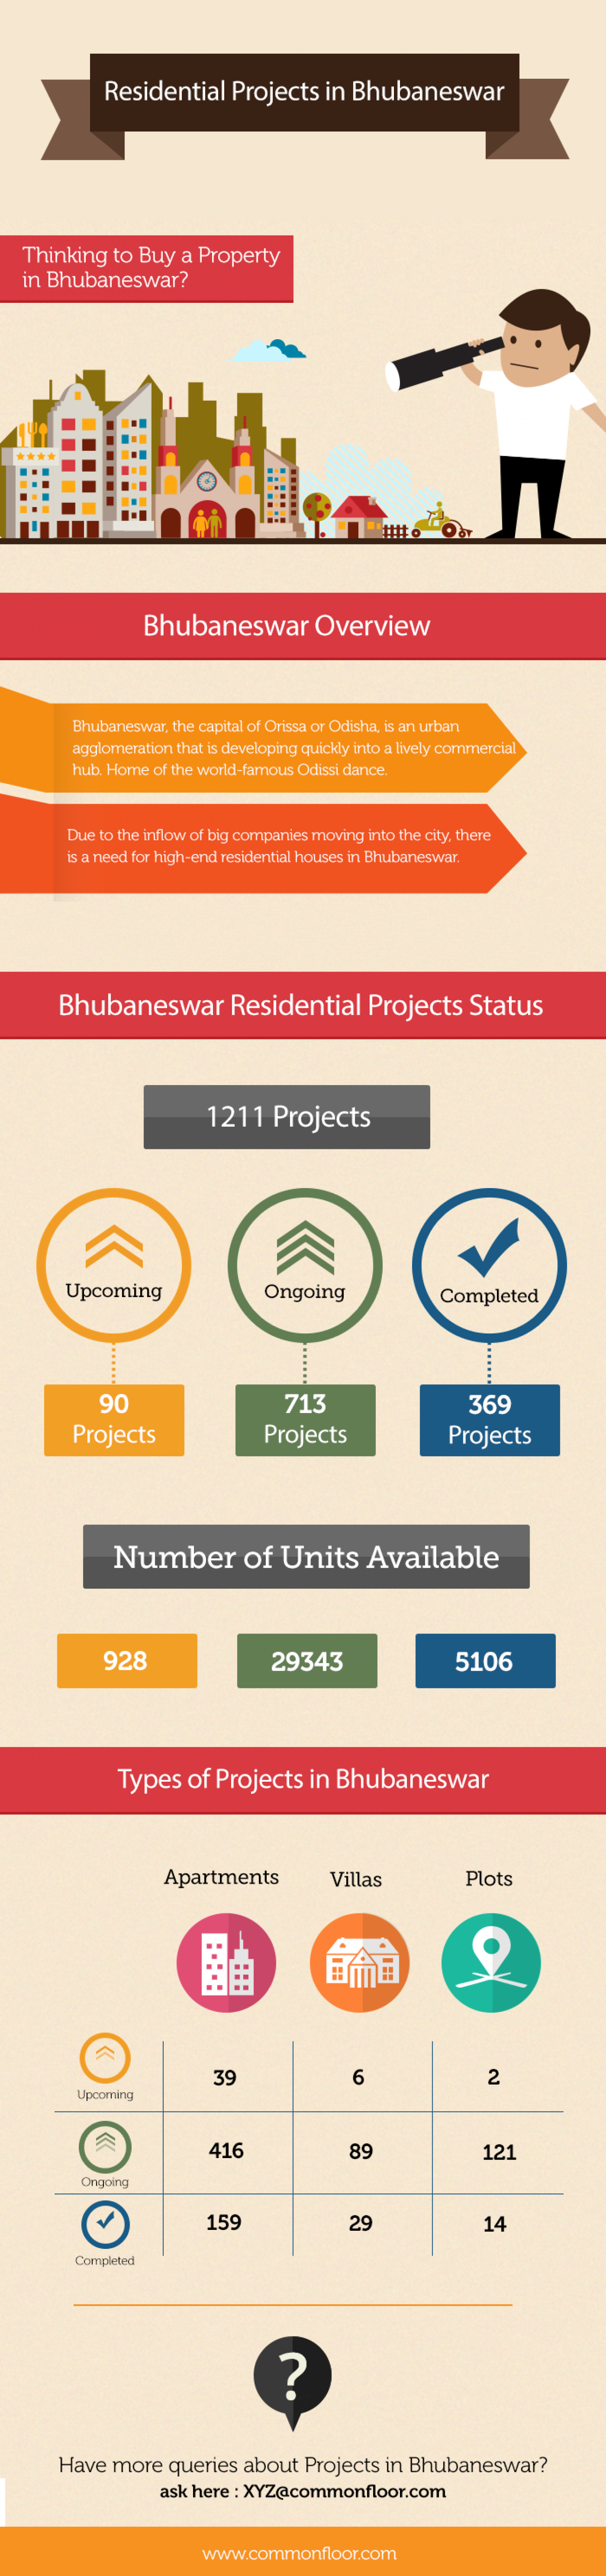 Residential Projects in Bhubaneswar Infographic